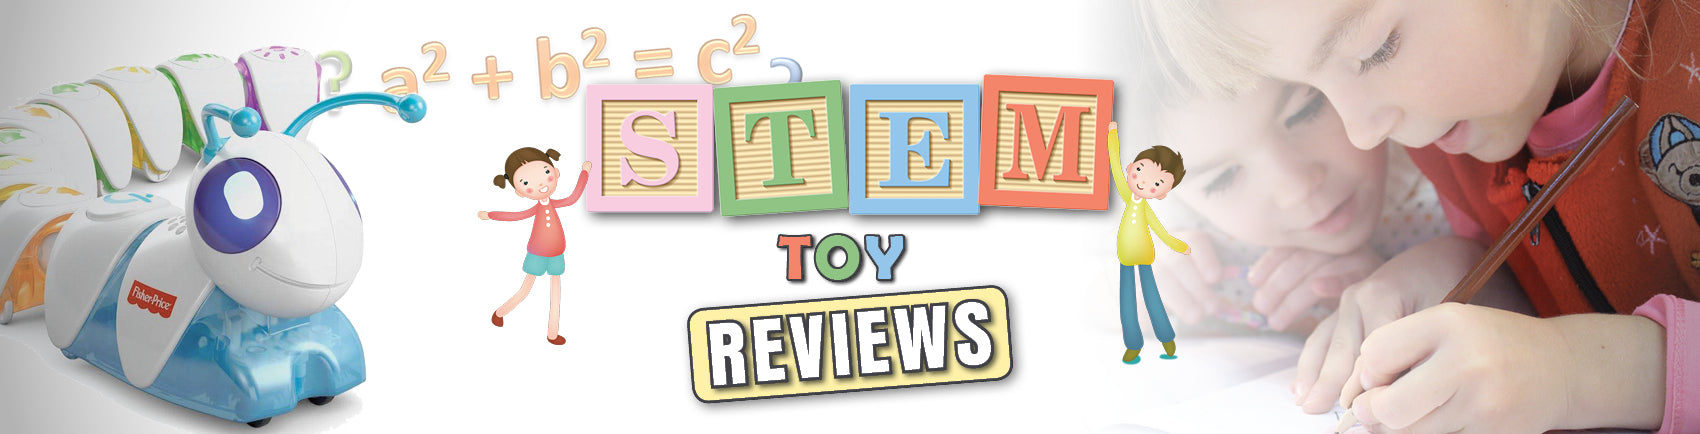 stem-toy-review-page-banner